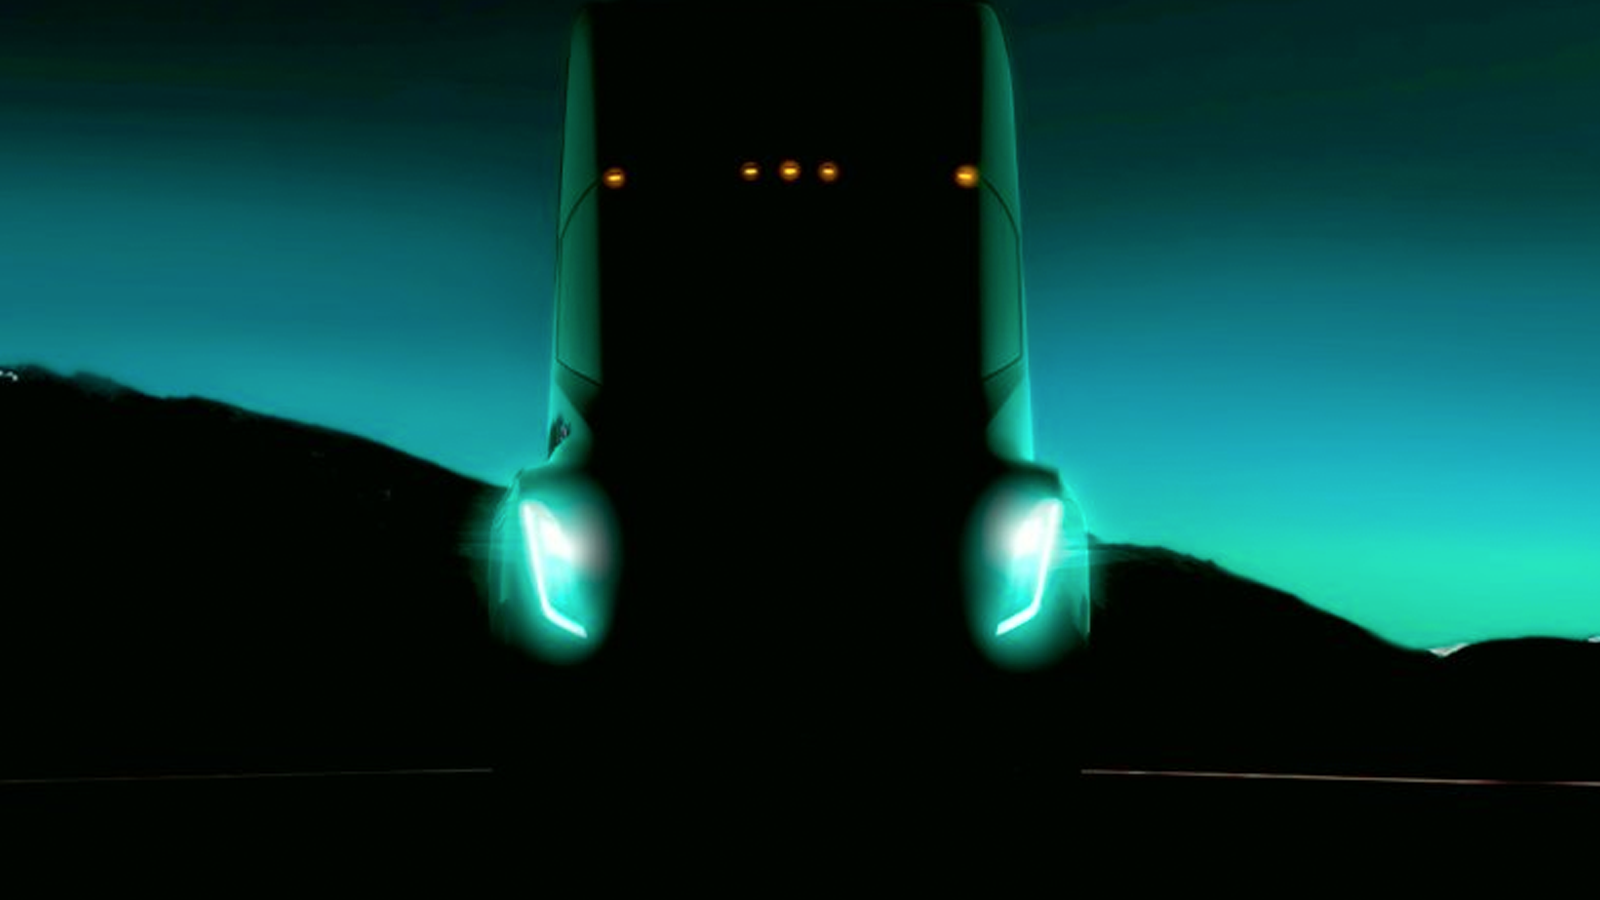 Tesla reportedly developing self-driving electric semi-truck technology